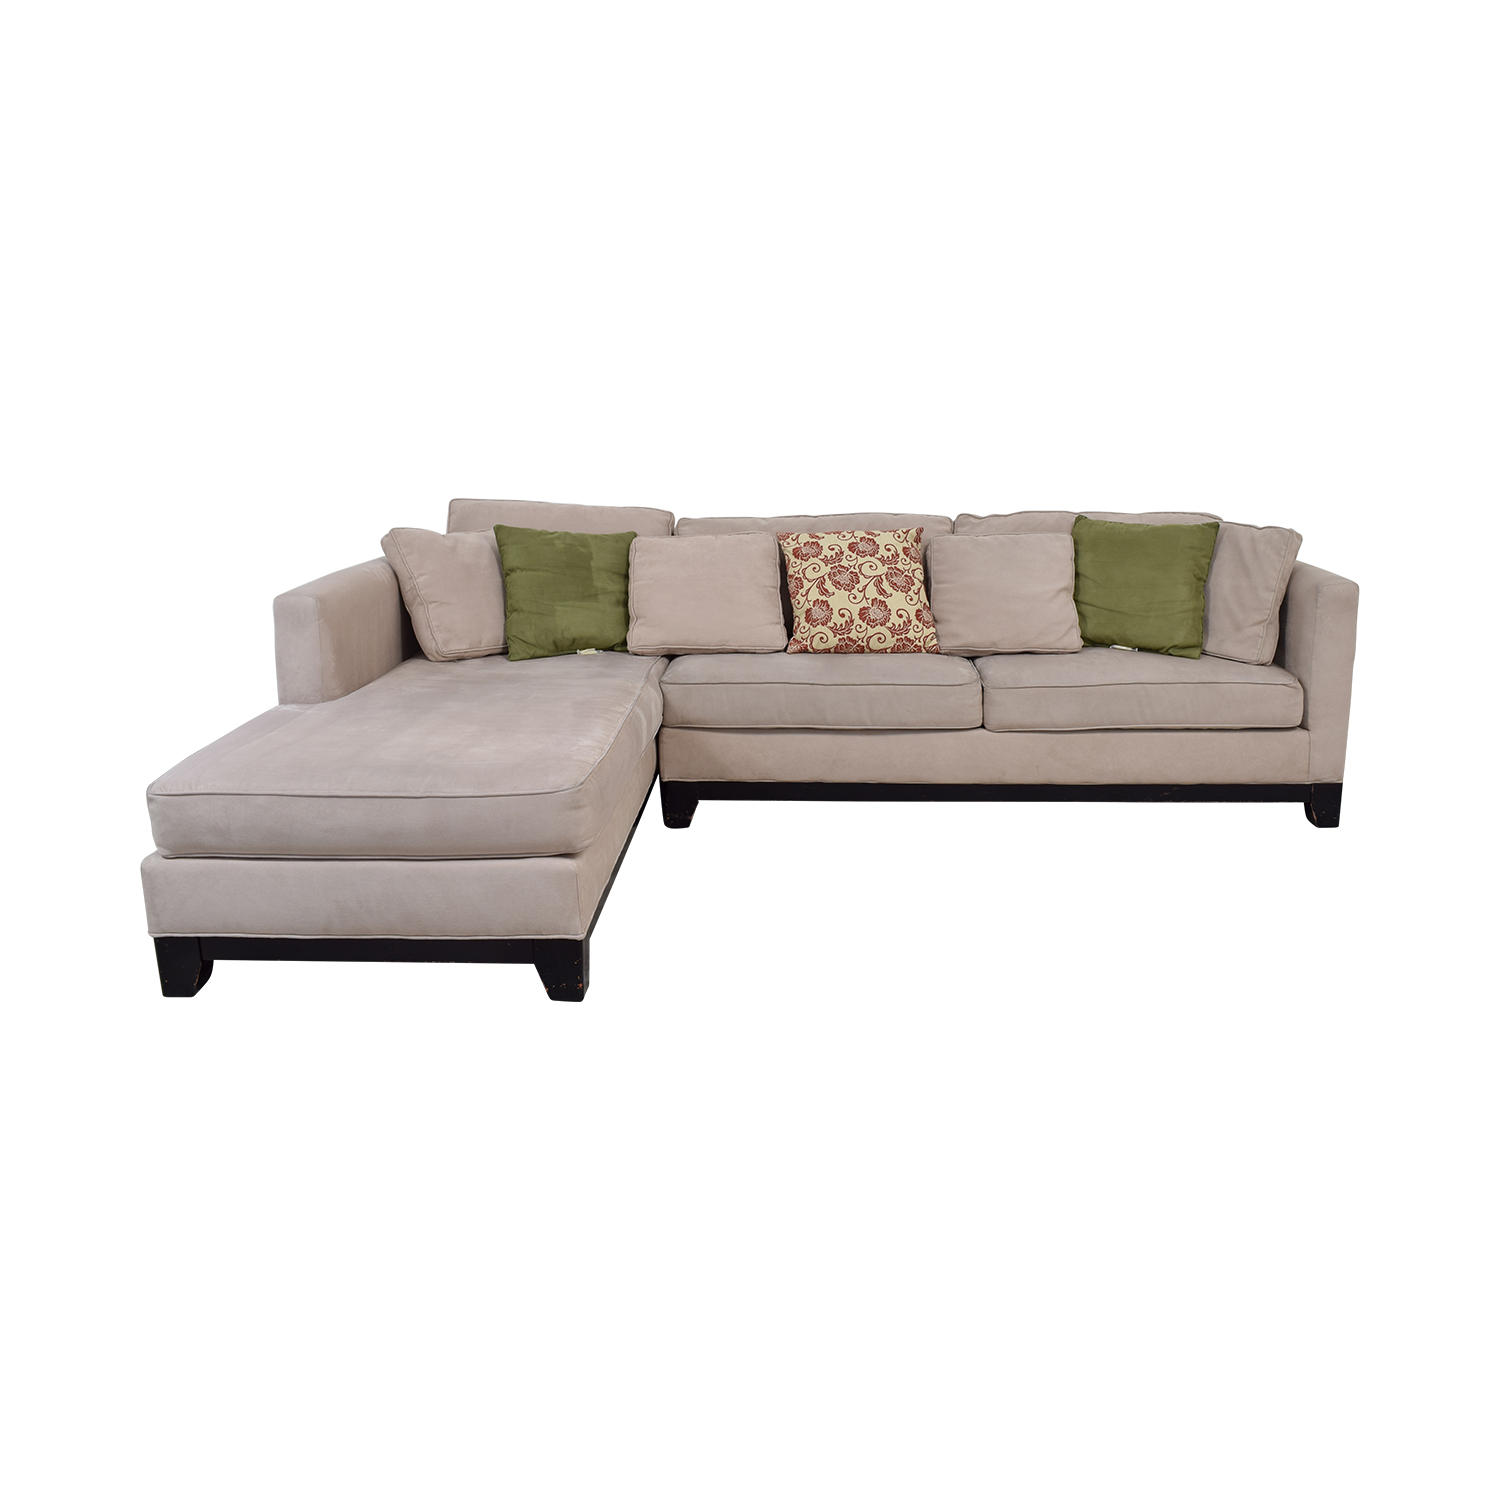 Macy's Macy's Microfiber Taupe Sectional Sofa for sale